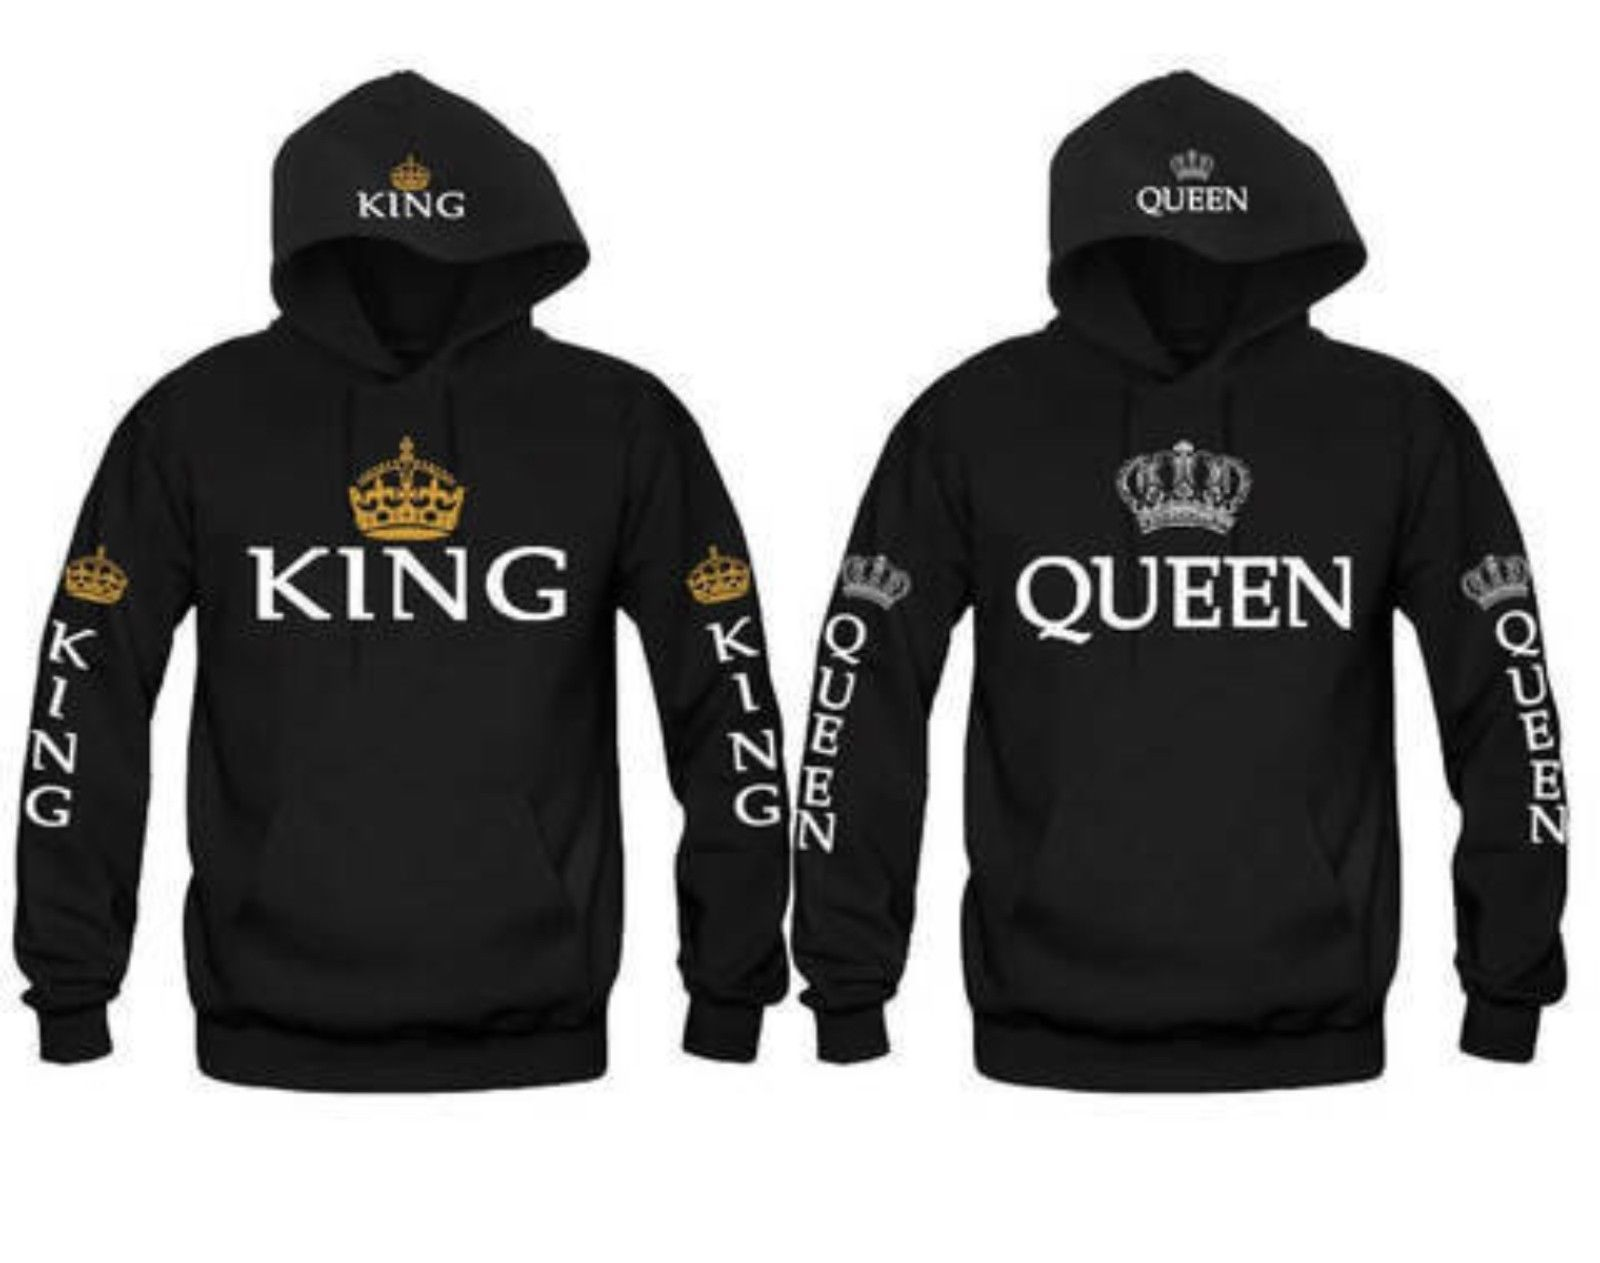 KING AND QUEEN HOODIES VALENTINE NEW MULTI COLORS MATCHING CUTE LOVE COUPLES LU